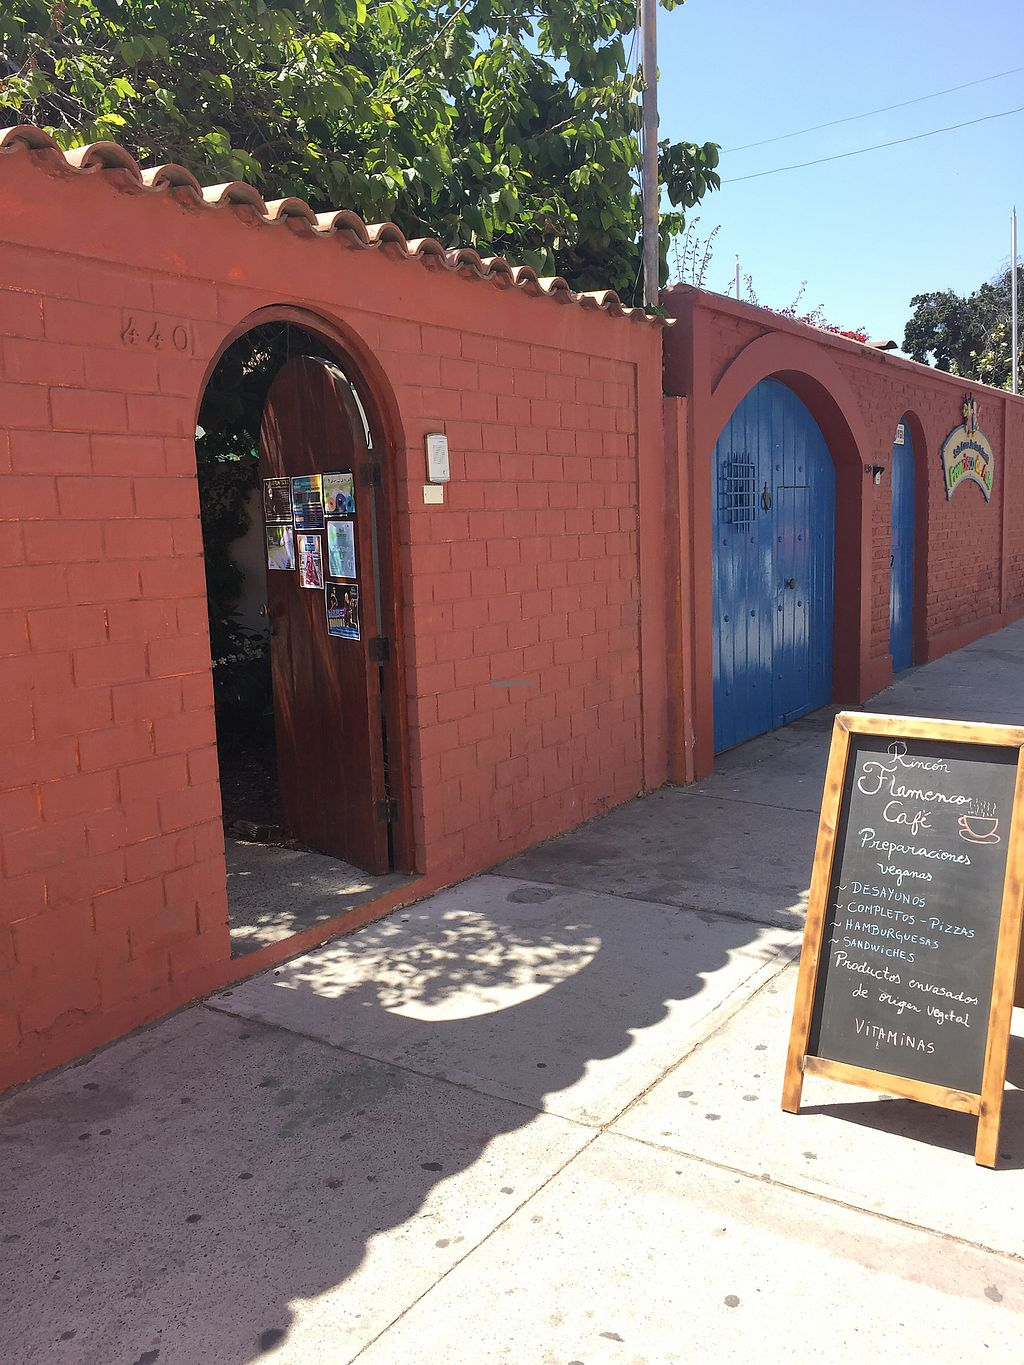 """Photo of Rincon Flamenco Cafe  by <a href=""""/members/profile/amysworld"""">amysworld</a> <br/>Entry from the street  <br/> March 9, 2018  - <a href='/contact/abuse/image/108510/368547'>Report</a>"""